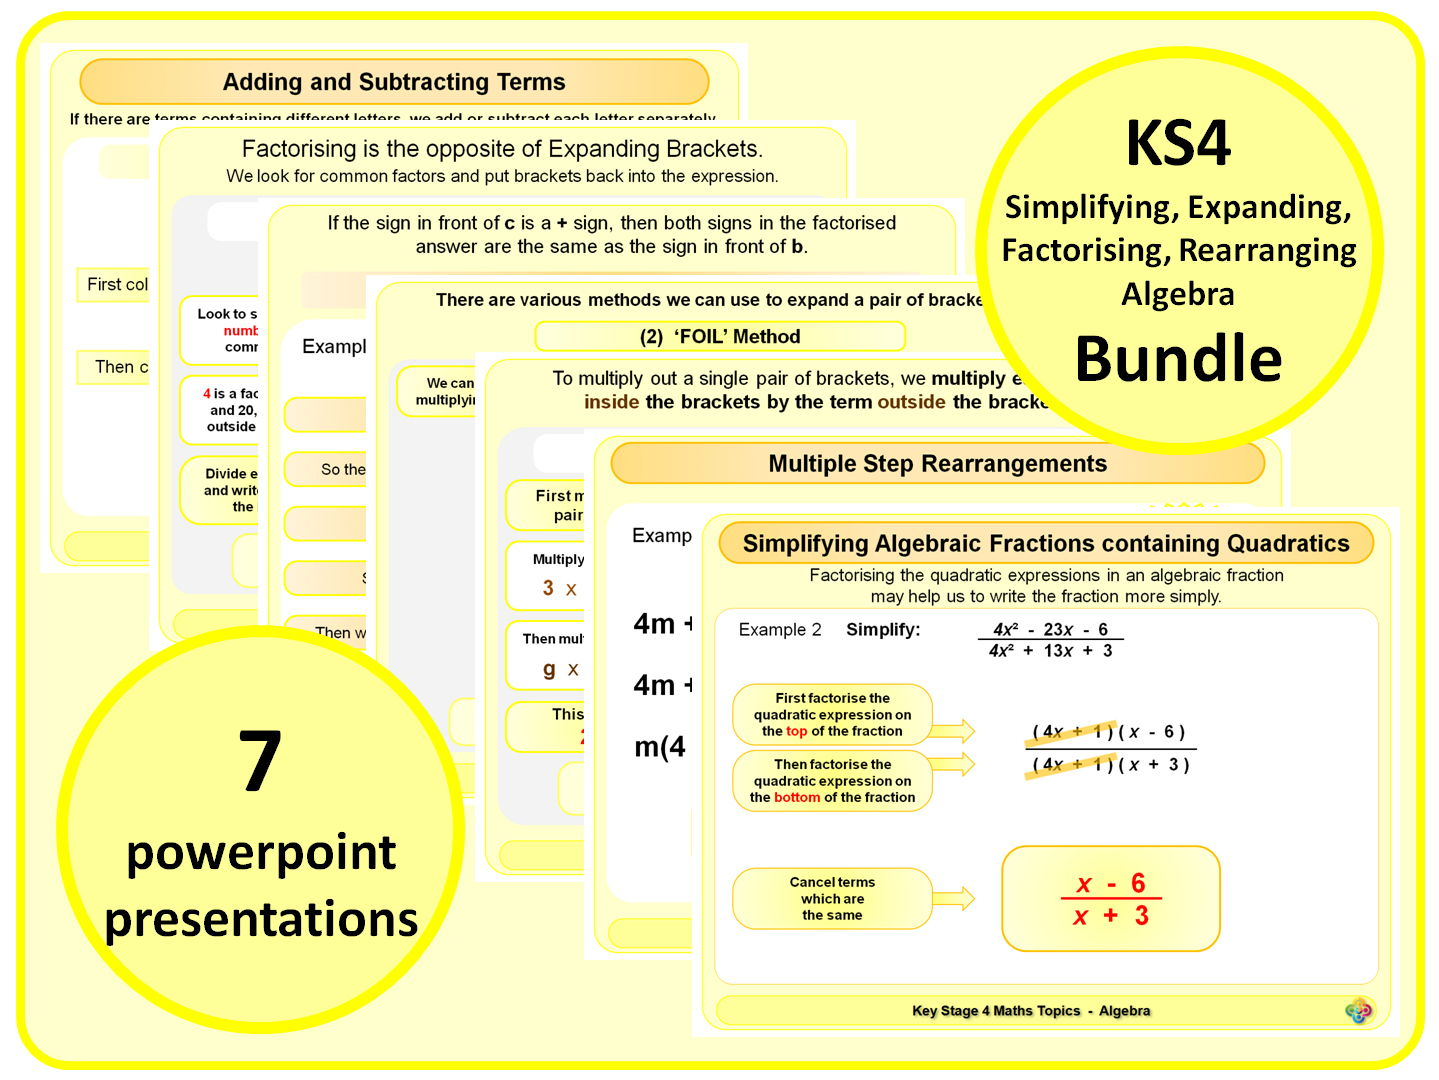 KS4 Simplifying, Expanding, Factorising, Rearranging Algebra BUNDLE